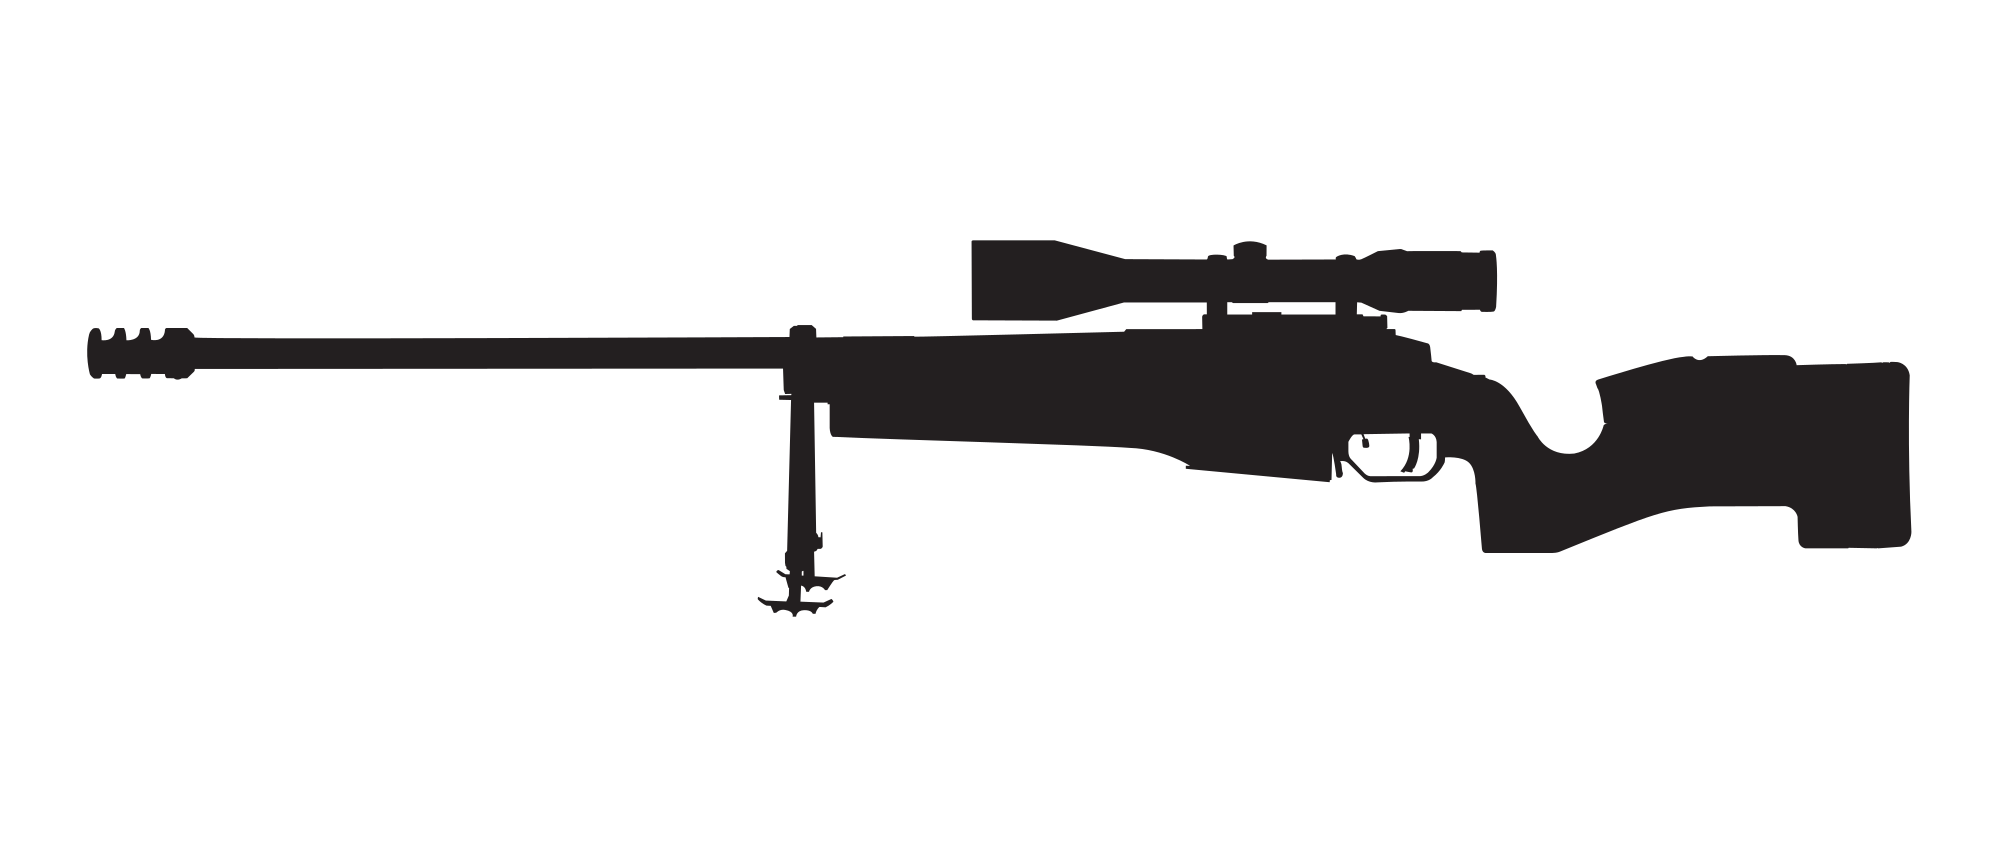 Rifle silhouette png. File sako trg svg